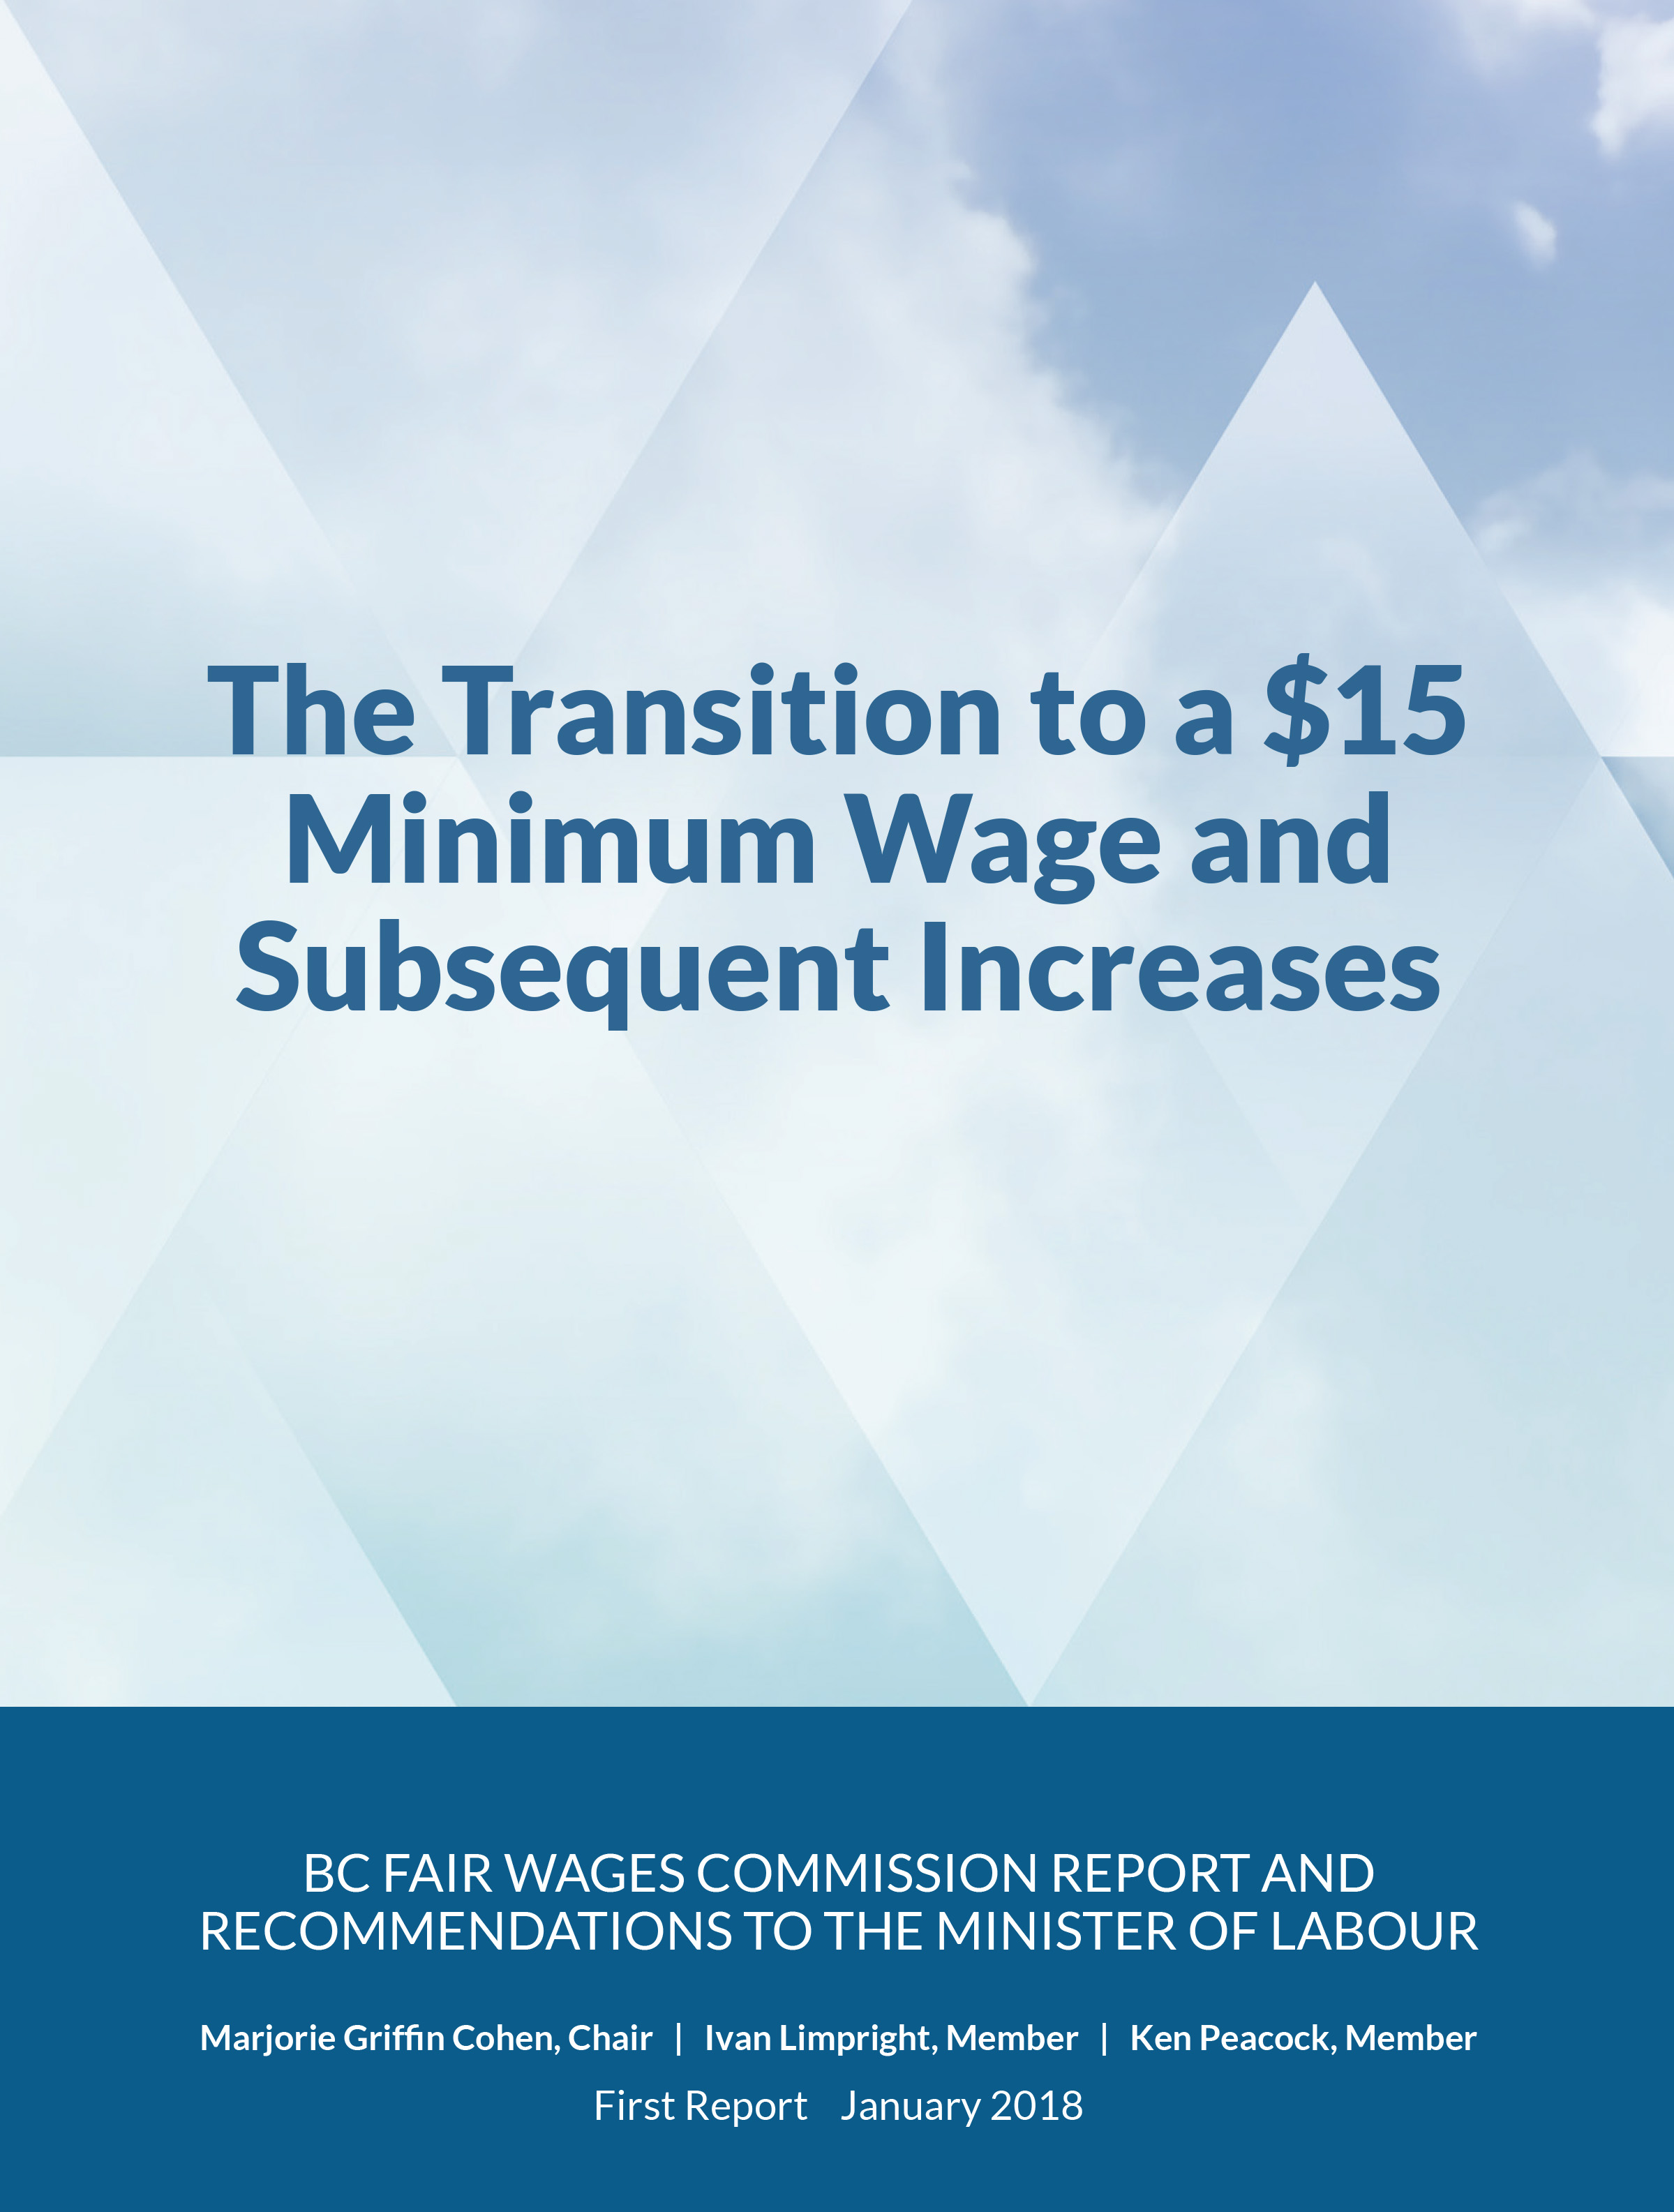 Fair Wages Commission Report